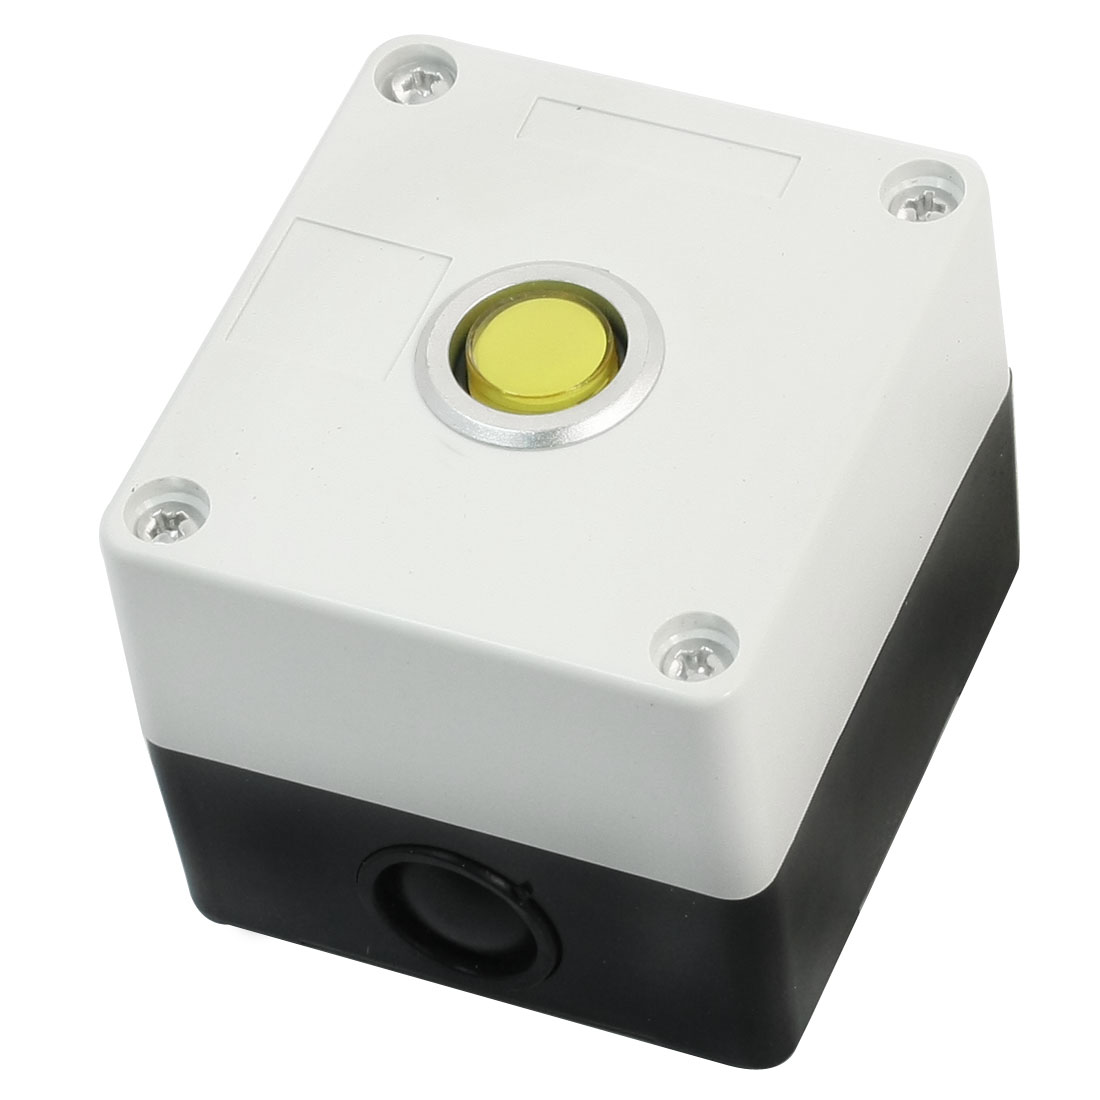 AC220V 5A 15mm Dia SPDT 1NO 1NC 3Pin Self-Locking Yellow Round Button Rectangle Plastic Case Pushbutton Station Switch Control Box